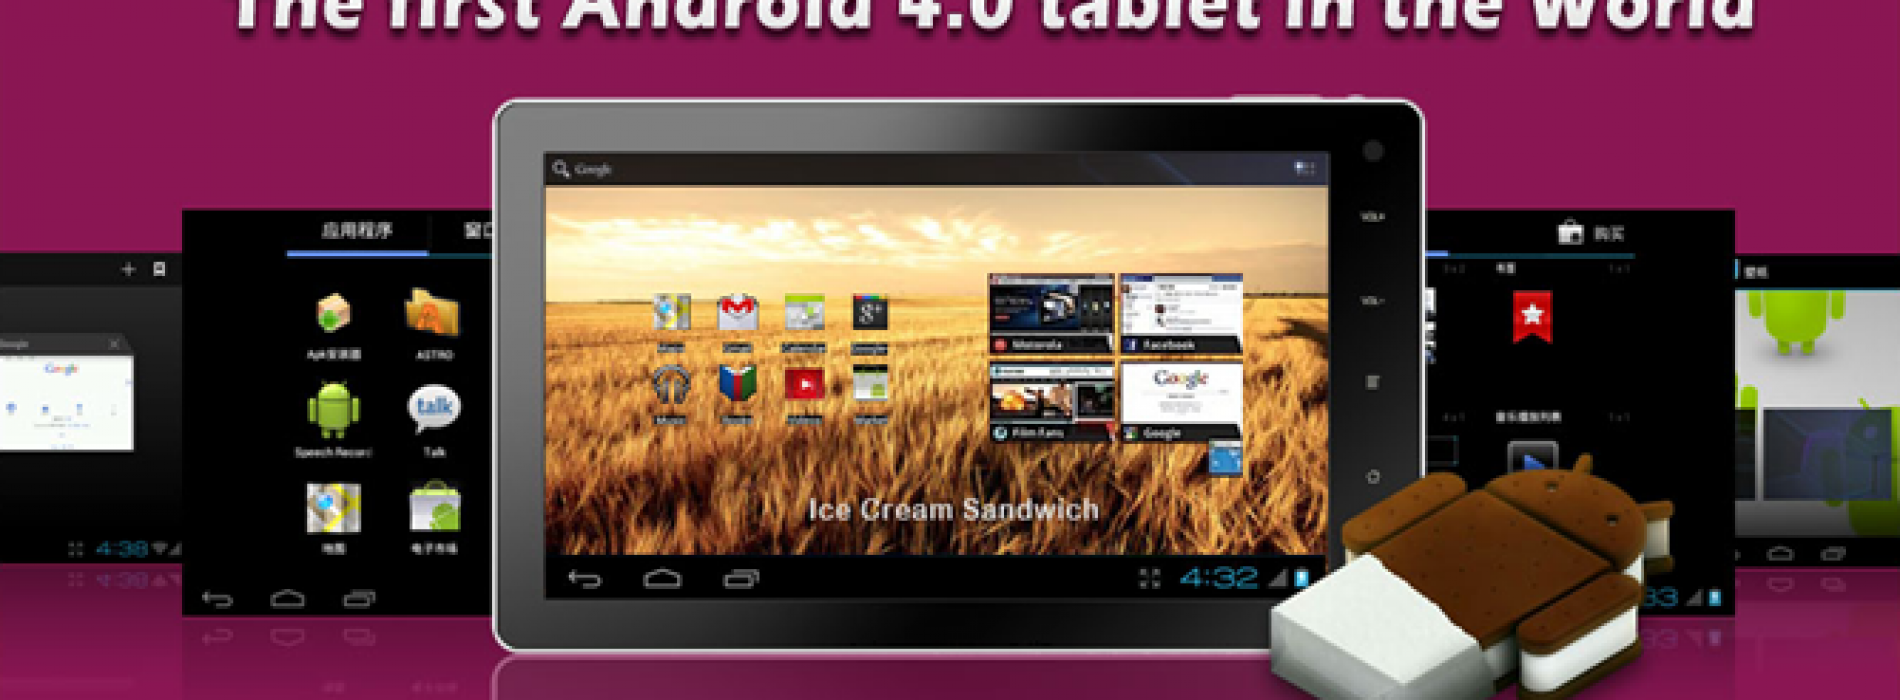 First official ICS tablet comes to market, aimed at budget crowd